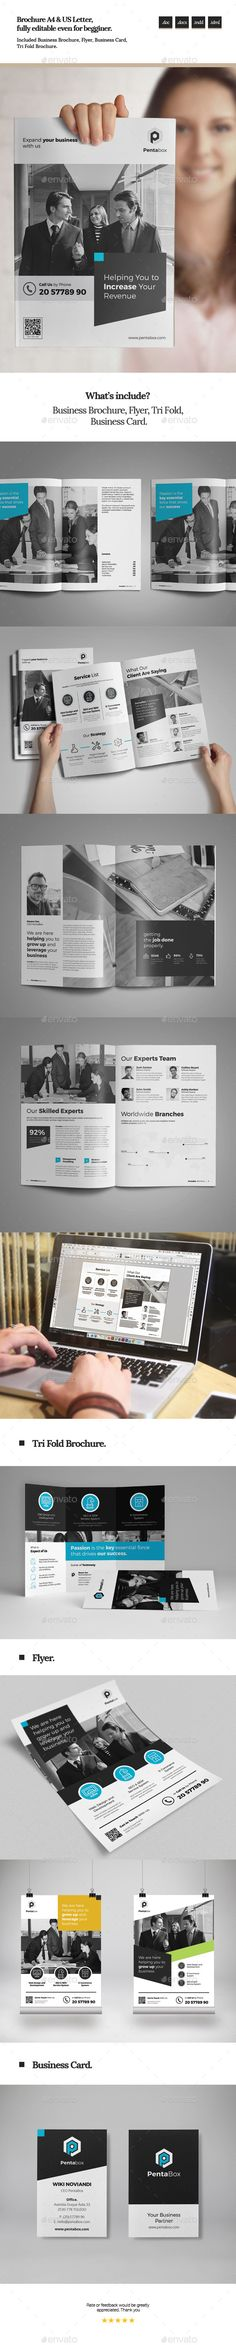 This Design Template Is Suitable For Marketing Brochure For Social